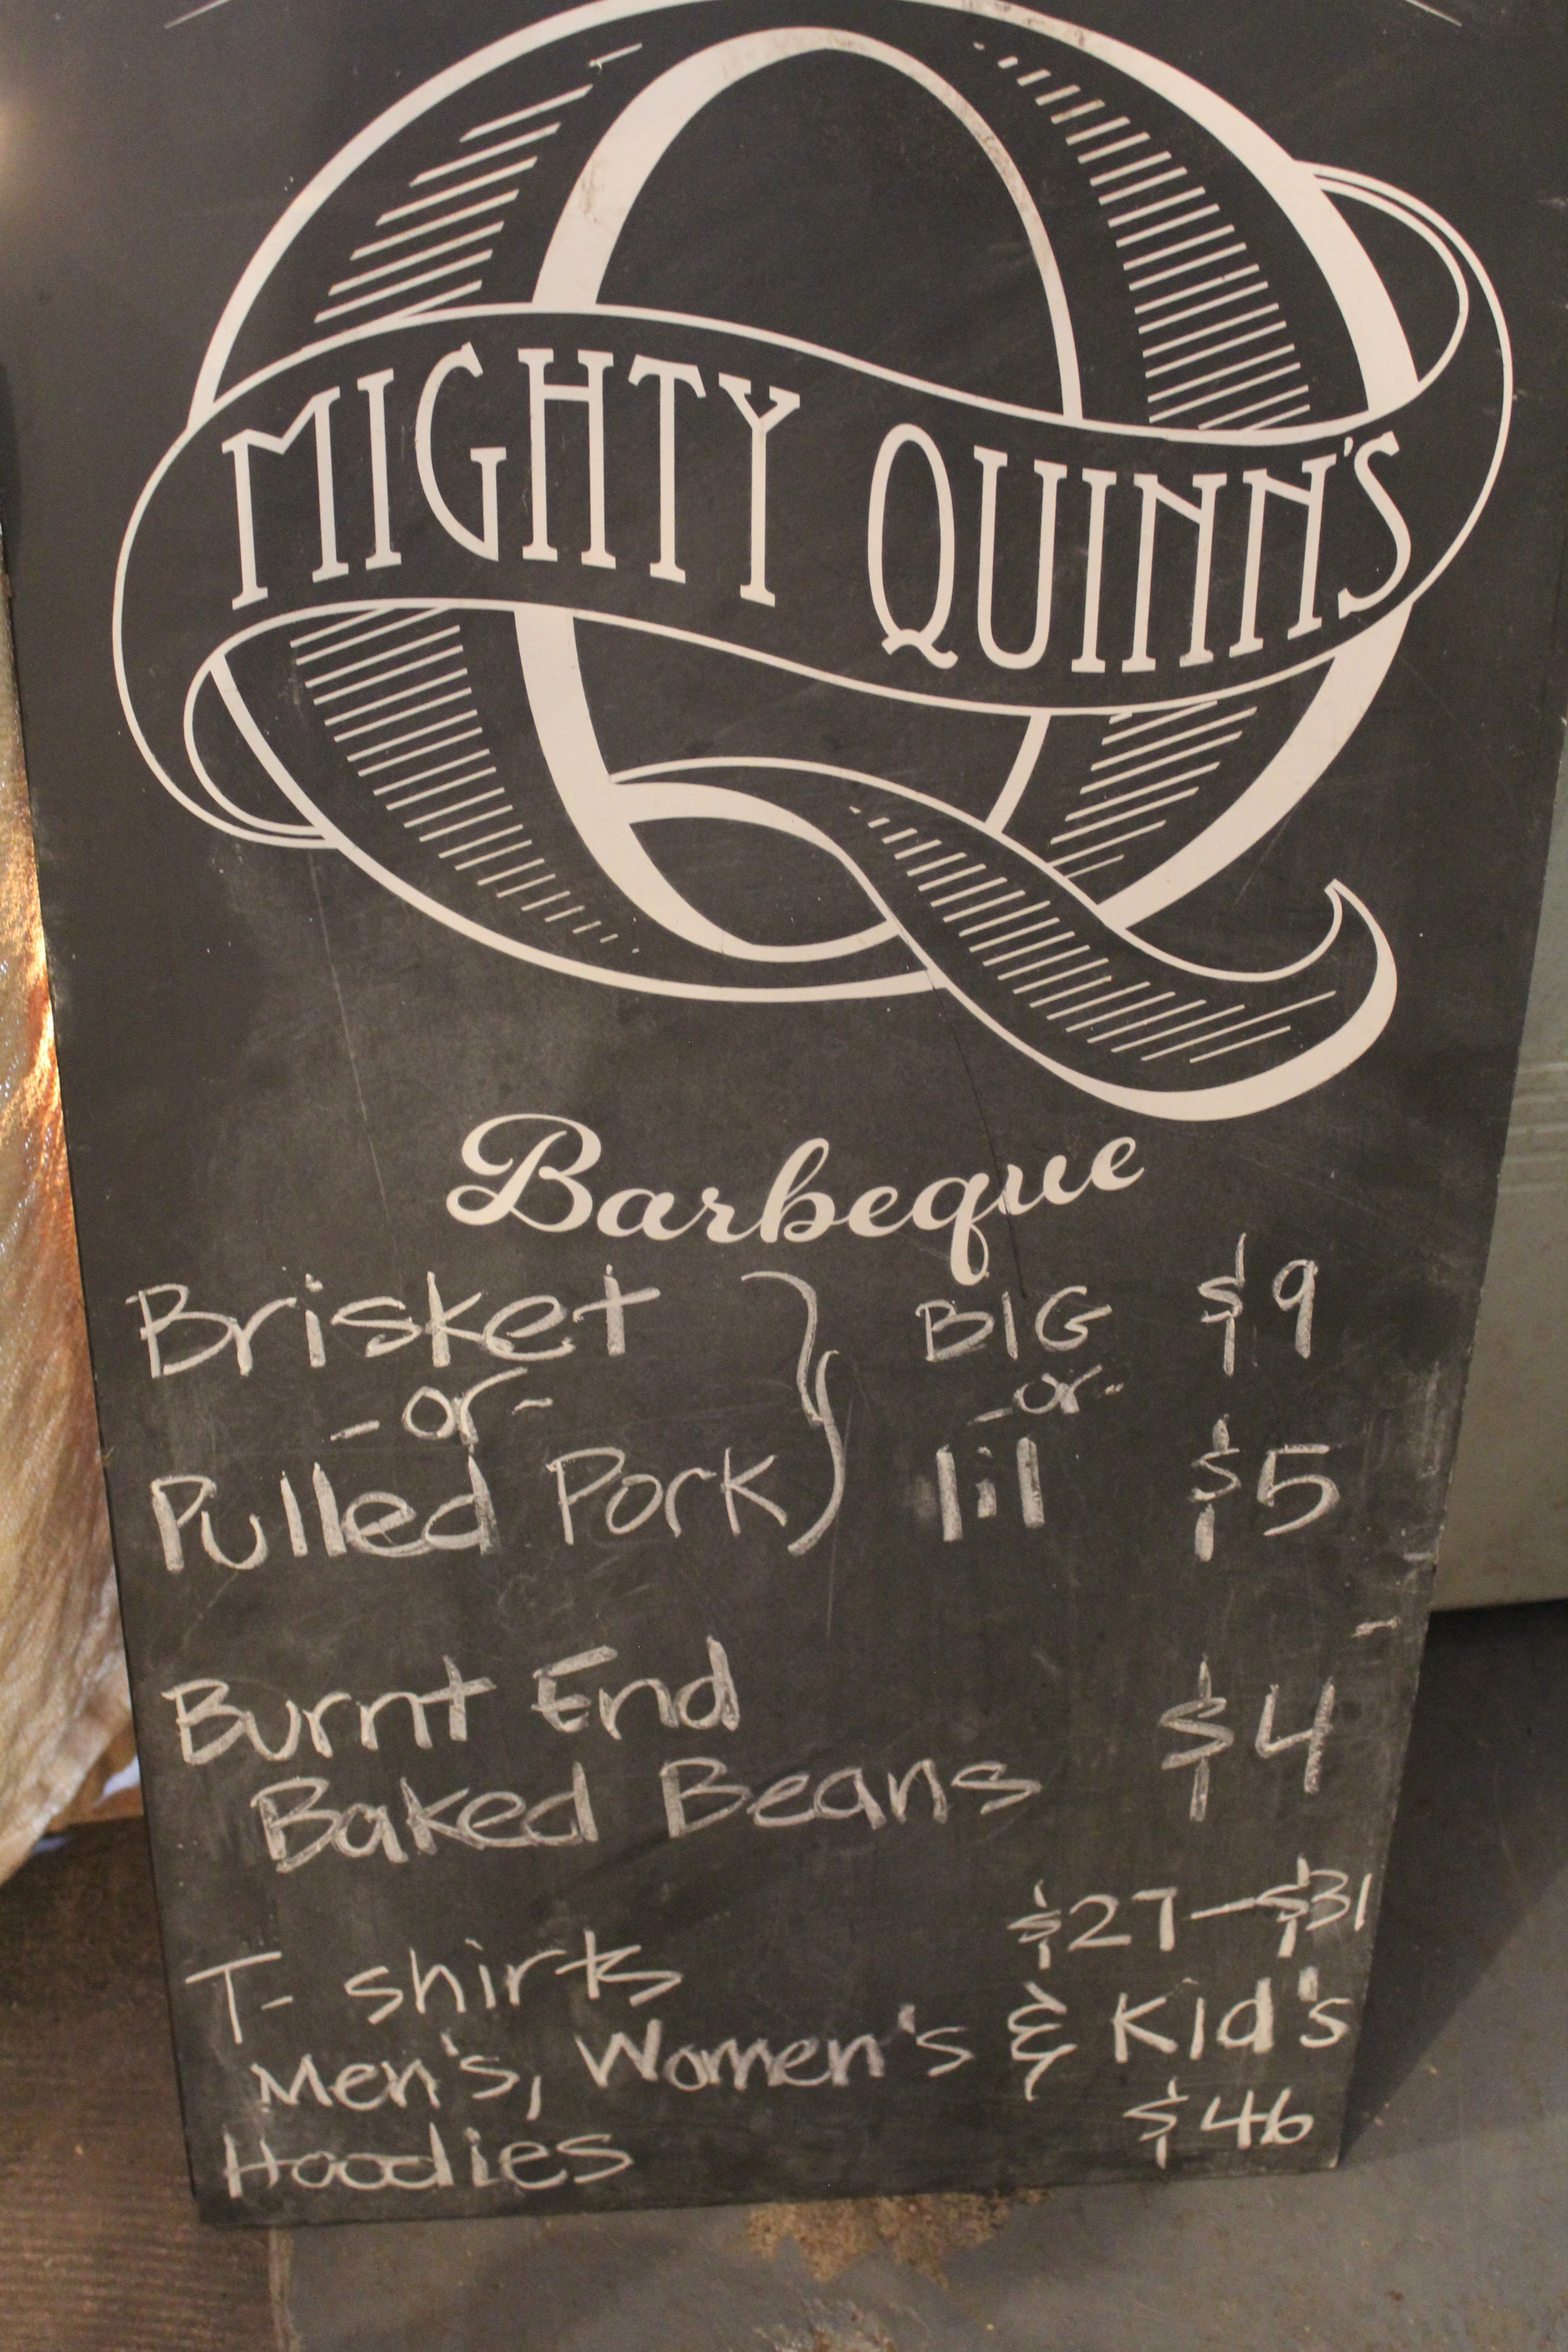 Mighty Quinns